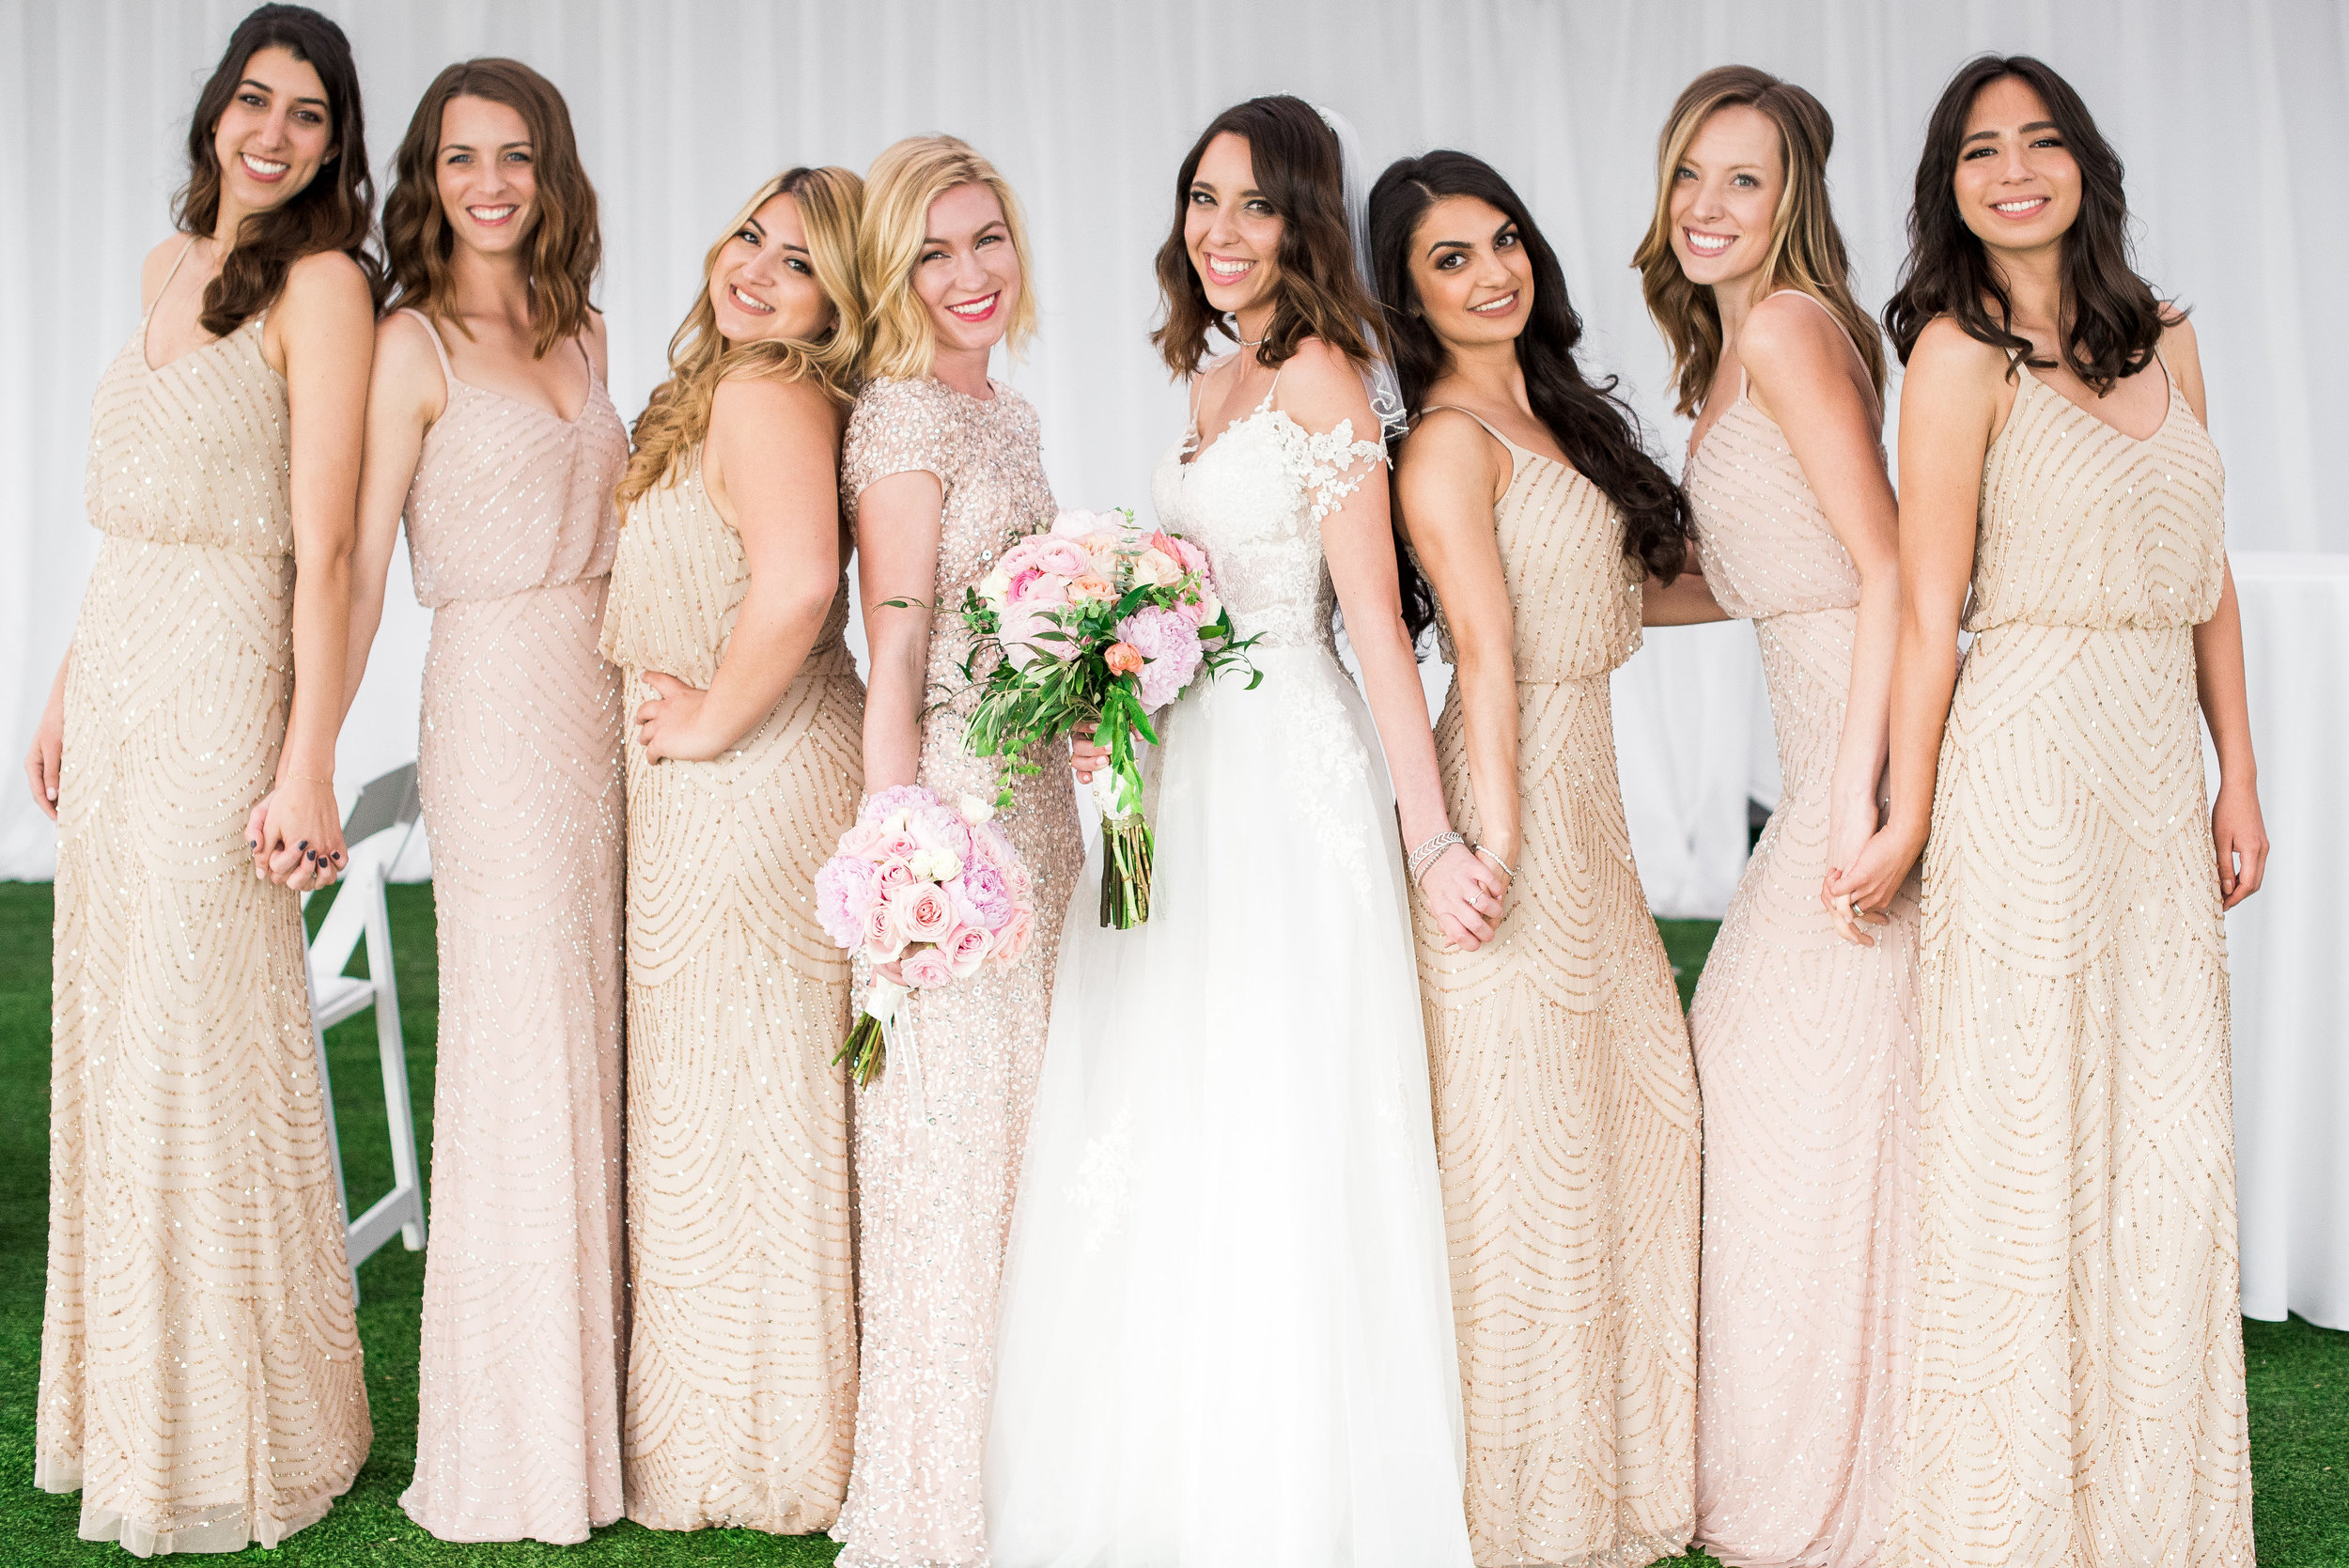 shadee and courtlan wedding with cluster events bridesmaids.jpg